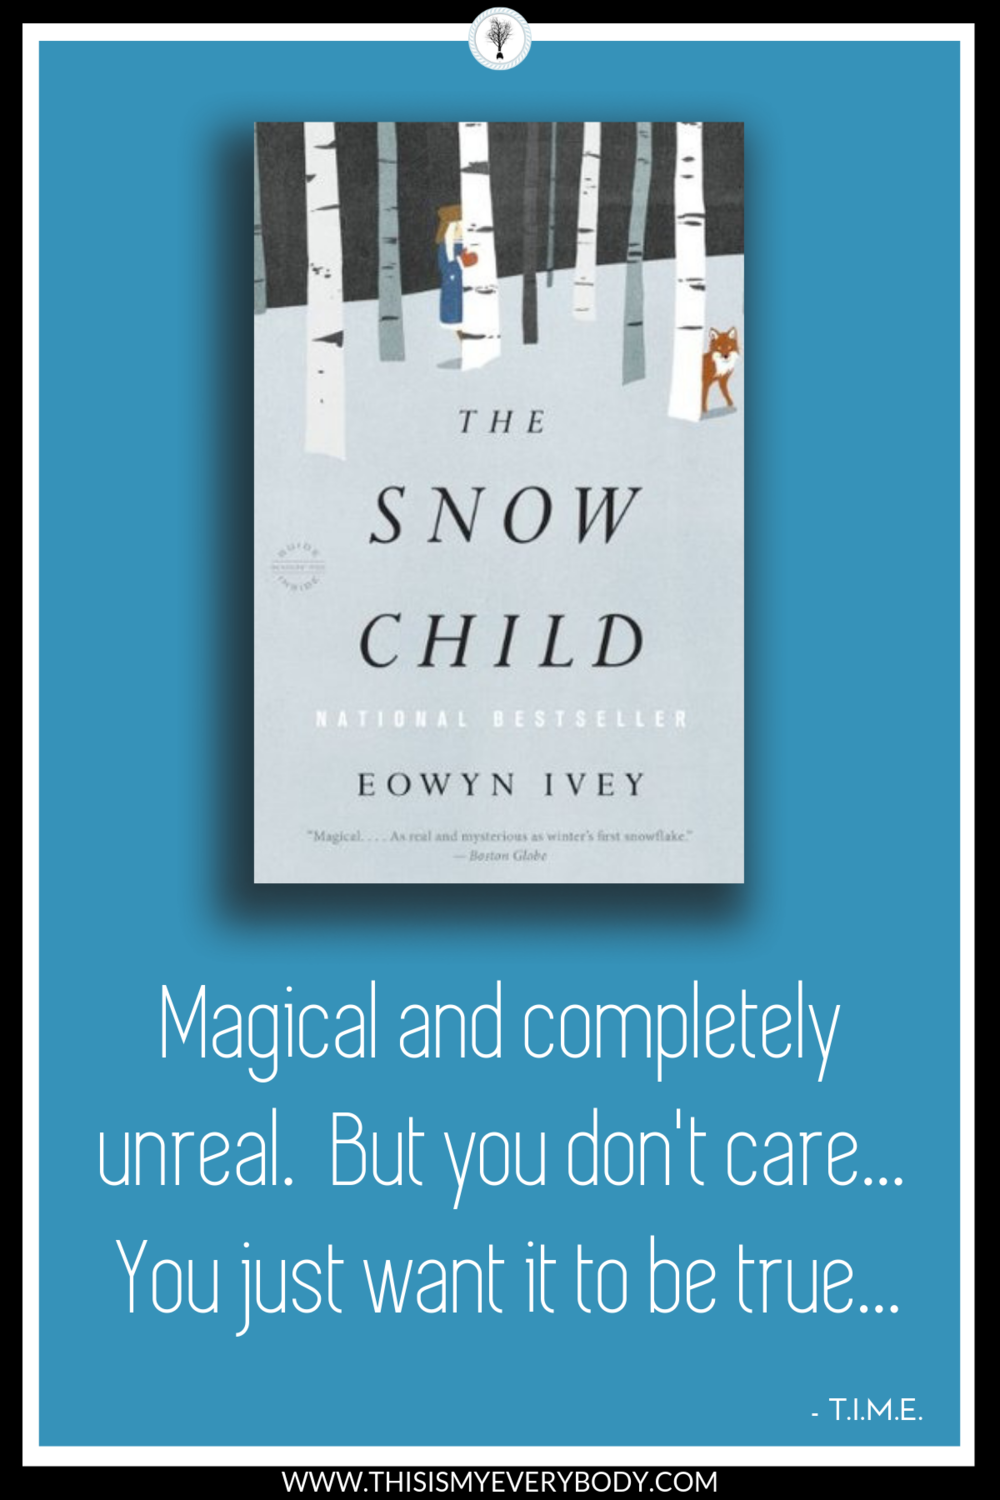 Magical and completely unreal. But you don't care… You just want it to be true… And best wedding dress ever! The Snow Child by Eowyn Ivey